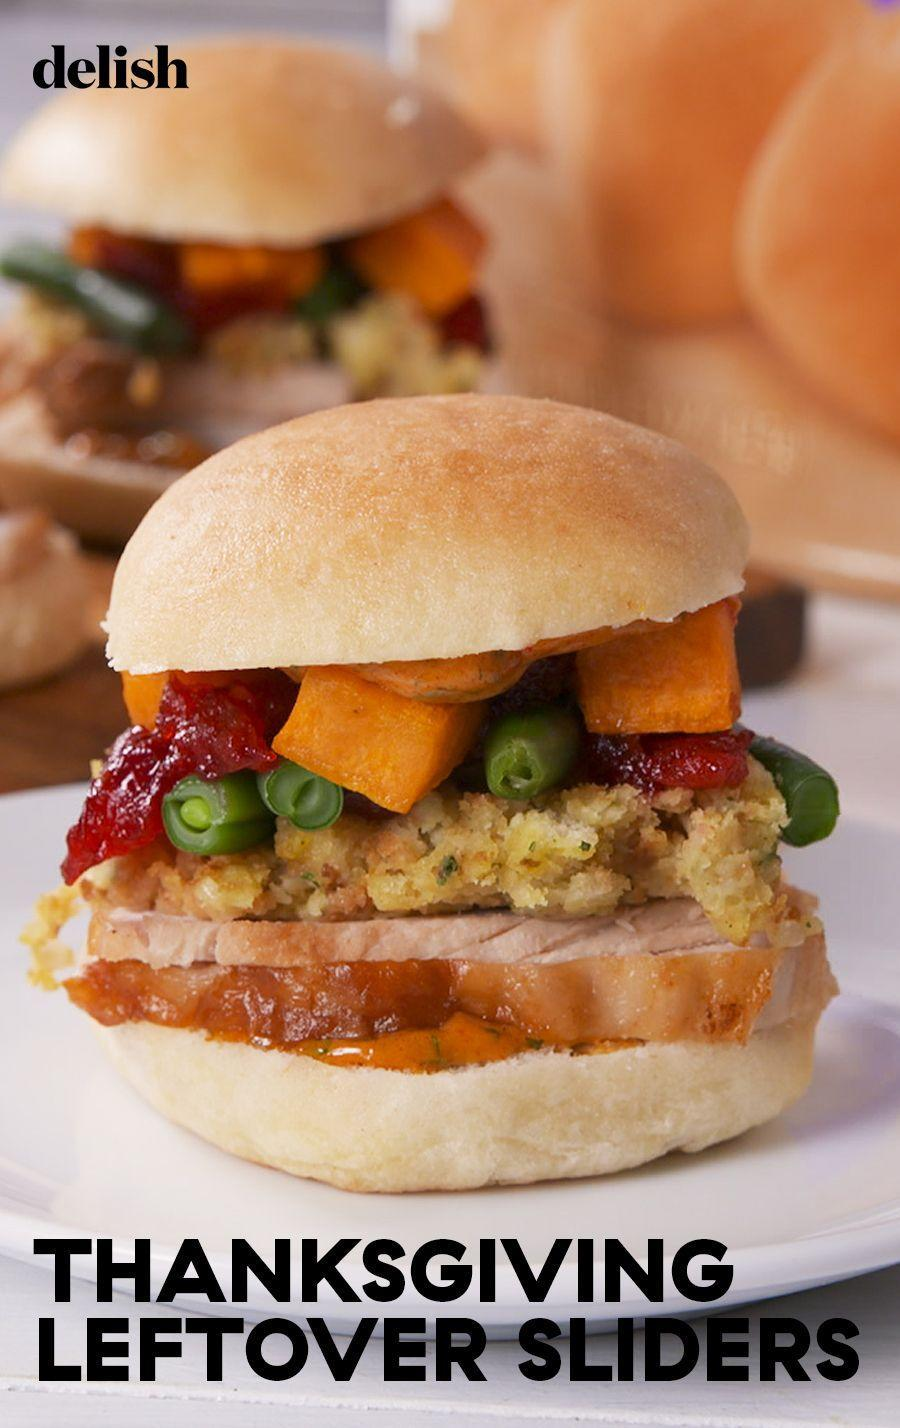 """<p>Don't sleep on that spicy mayo.</p><p>Get the recipe from <a href=""""https://www.delish.com/cooking/recipe-ideas/a24081123/thanksgiving-leftover-sliders-recipe/"""" rel=""""nofollow noopener"""" target=""""_blank"""" data-ylk=""""slk:Delish"""" class=""""link rapid-noclick-resp"""">Delish</a>.</p>"""